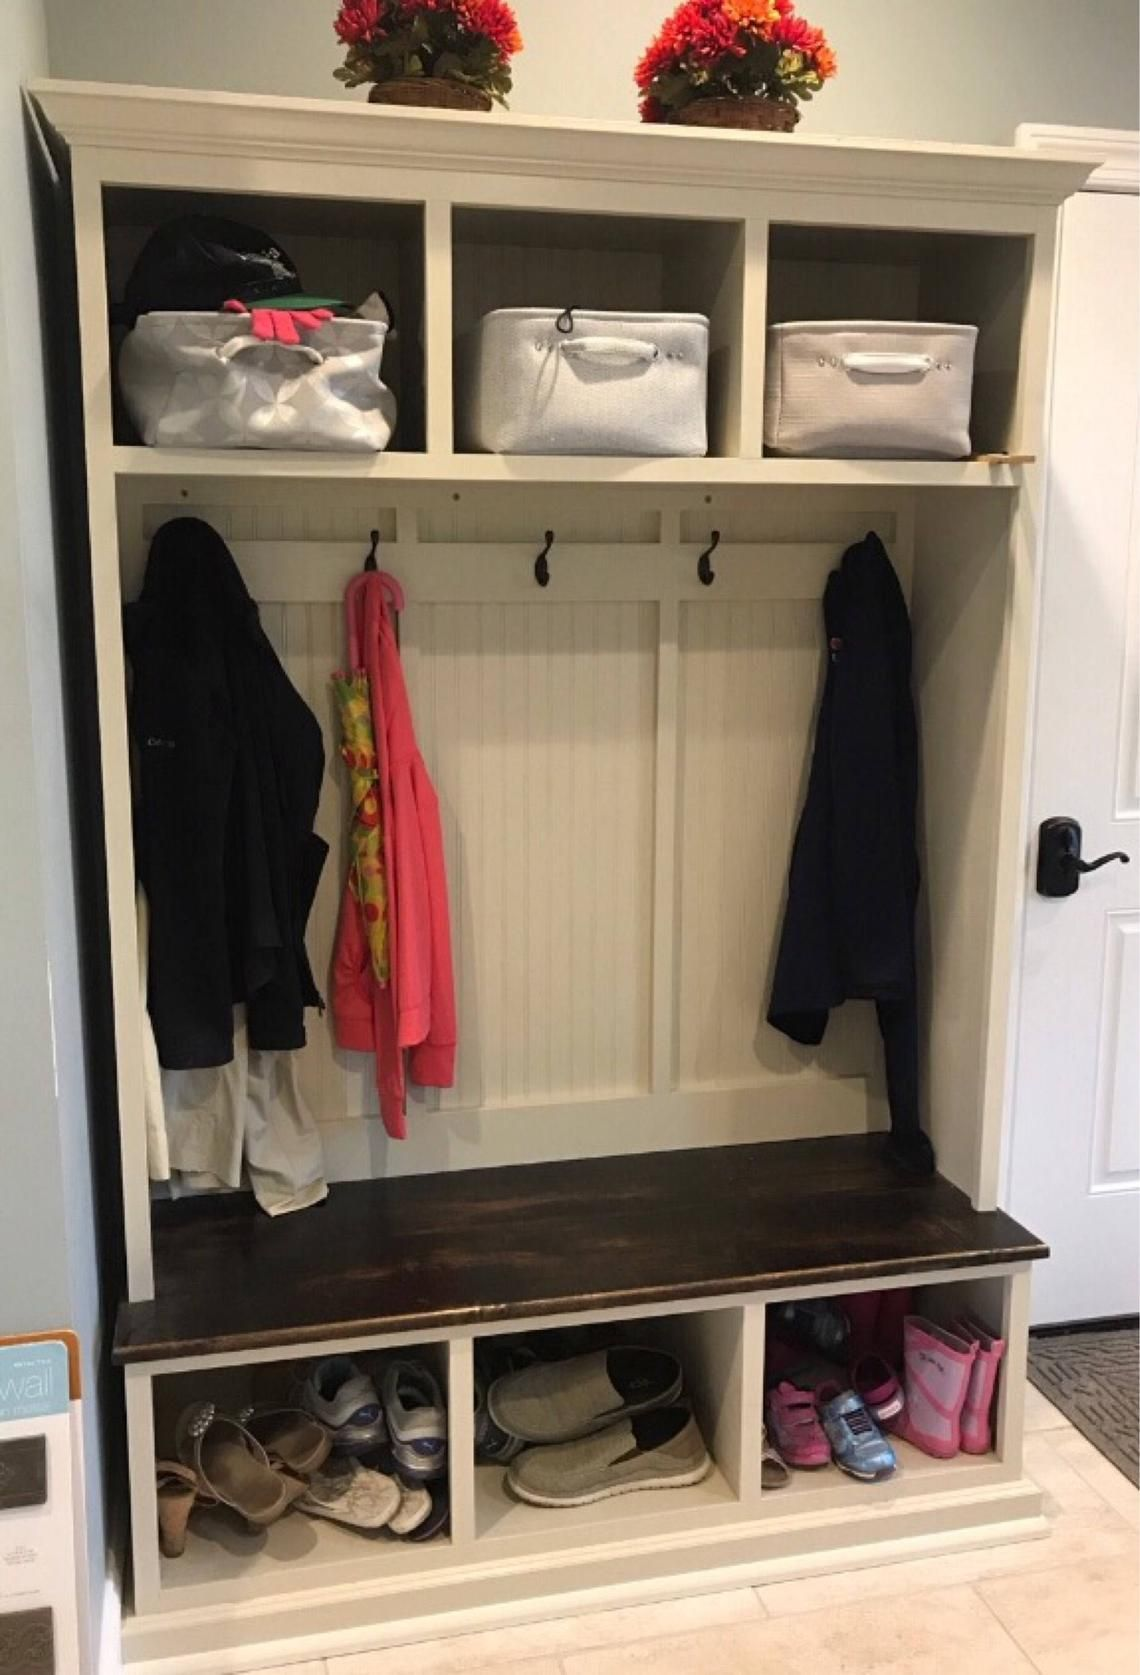 19 Clever Entryway Shoe Storage Ideas To Stop The Clutter Entryway Shoe Entryway Shoe Storage Shoe Basket